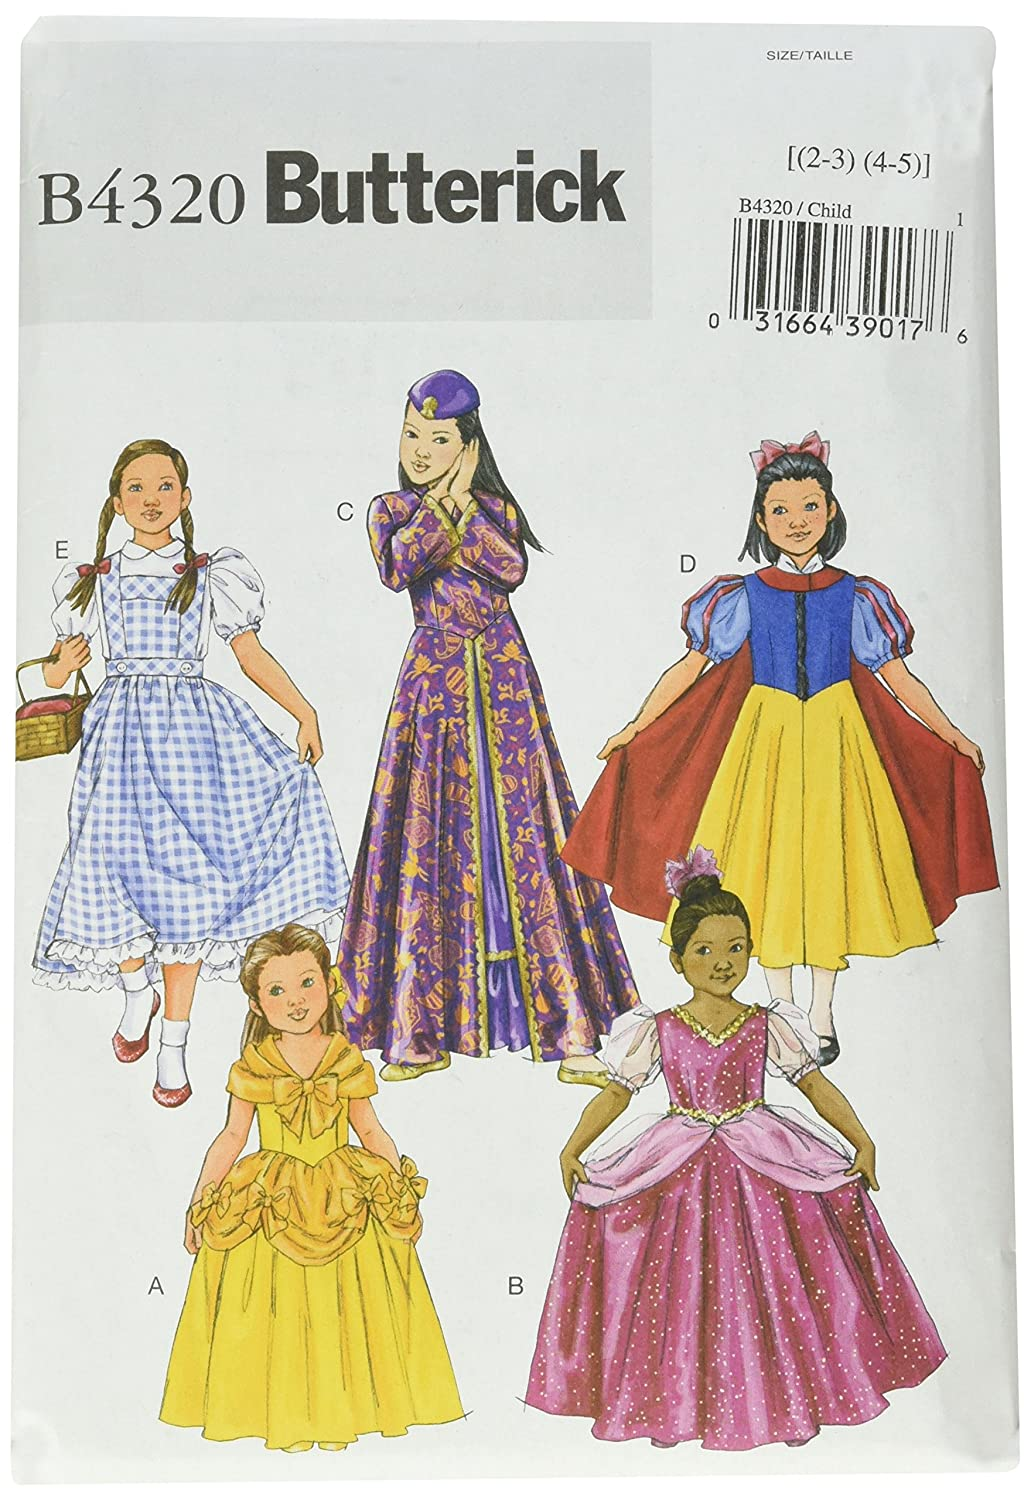 Butterick Patterns B4320 Size CHILD 2-3 4-5 Children's/ Girls' Costume, Pack of 1, White McCall's Patterns B4320CHI